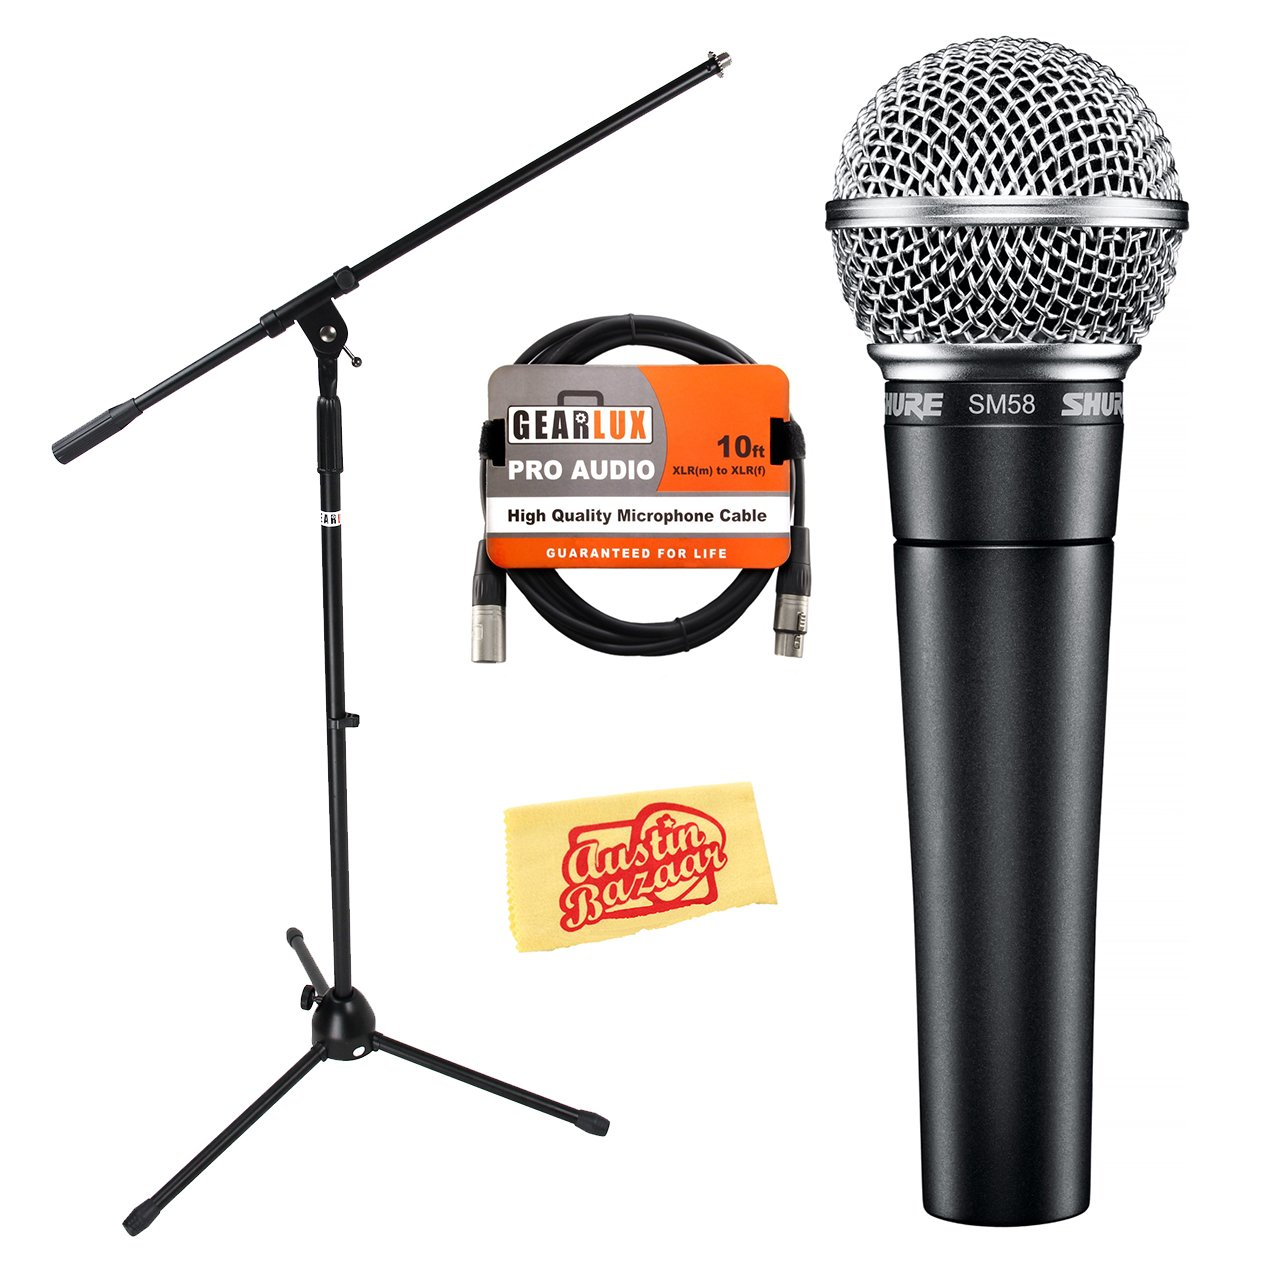 Shure SM58-LC Vocal Cardioid Dynamic Microphone Bundle with Gearlux Boom Stand, XLR Cable, Windscreen, and Austin Bazaar Polishing Cloth